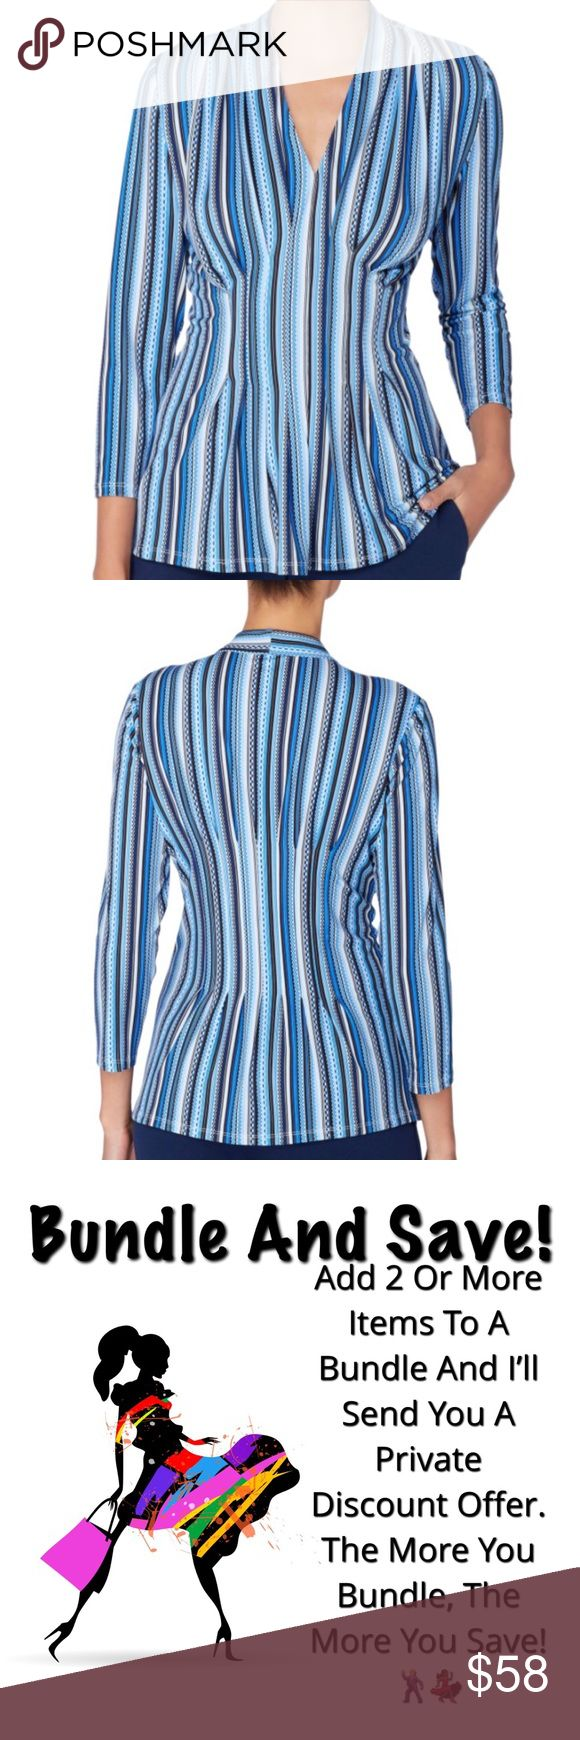 "Beautiful Slimming Top (Nordstrom) NWT This beautiful striped v-neck top has release pleats nipping in the middle creating a wonderful slimming effect. Comfortable matte jersey material. 25"" length size L Tops"